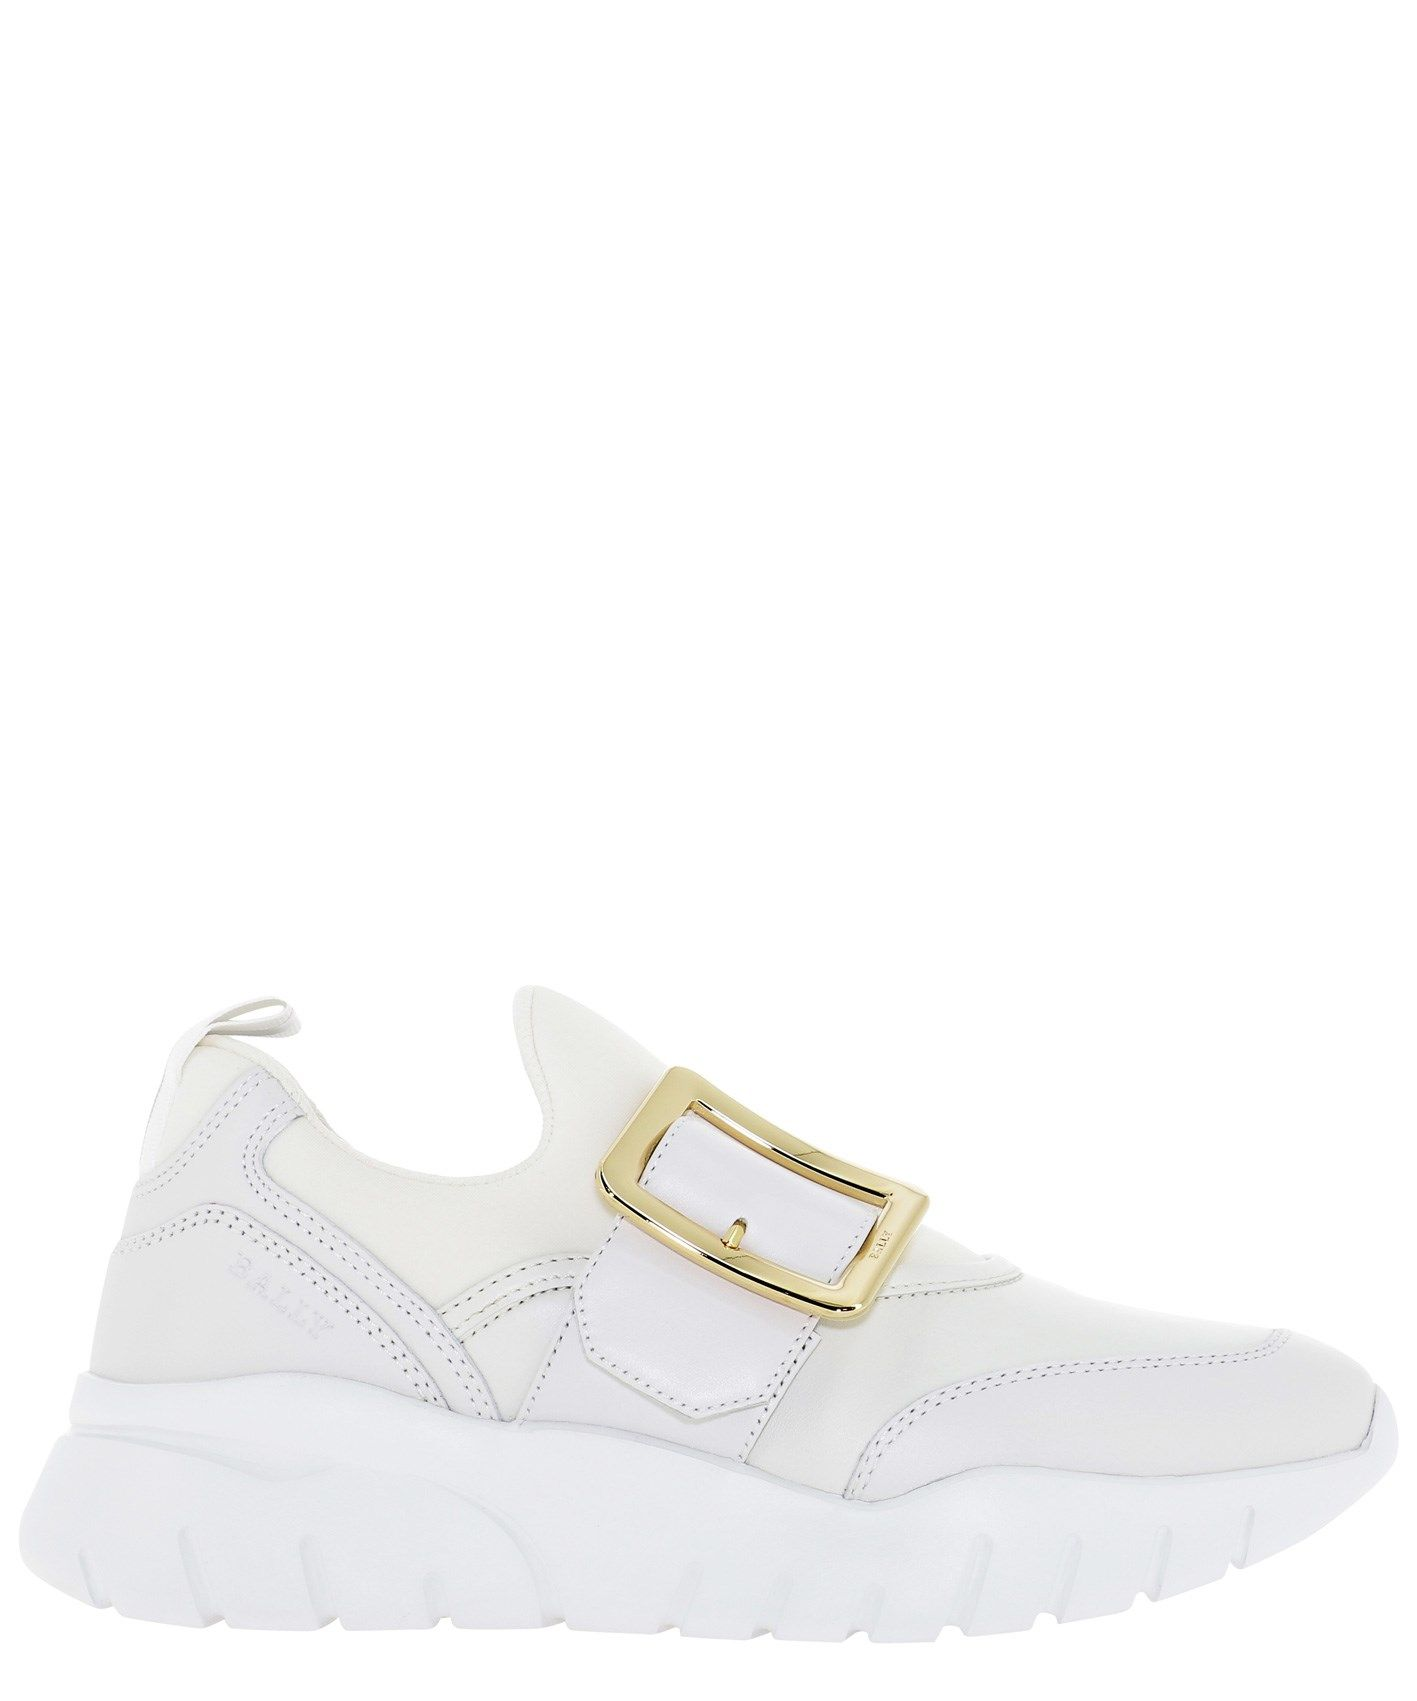 Bally BALLY WOMEN'S 6234720BRINELLENEWWHITE WHITE OTHER MATERIALS SNEAKERS